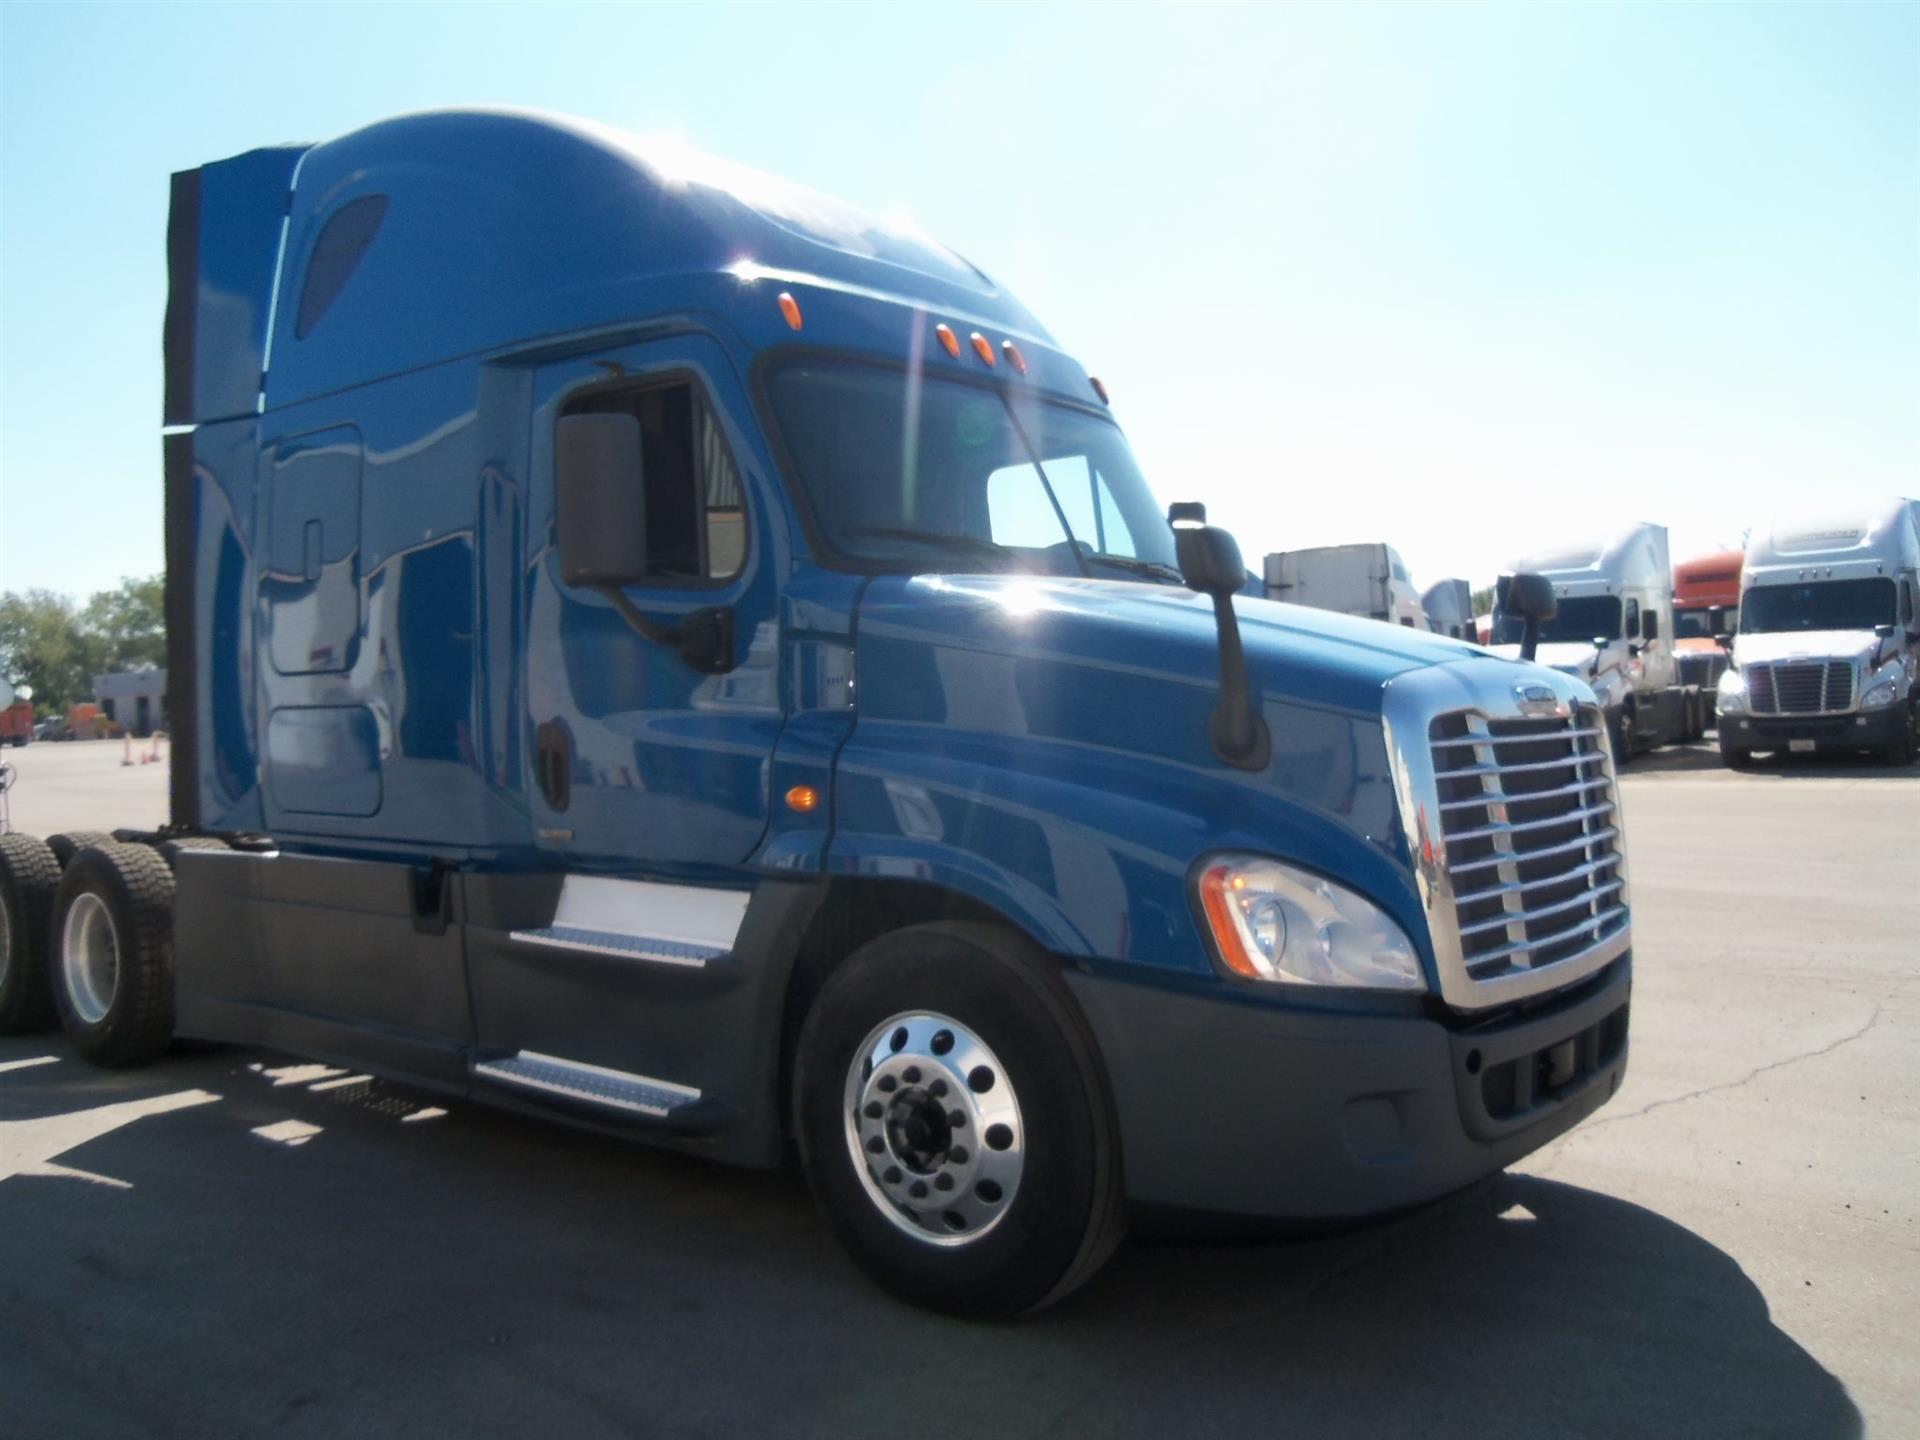 USED 2014 FREIGHTLINER CASCADIA SLEEPER TRUCK #131845